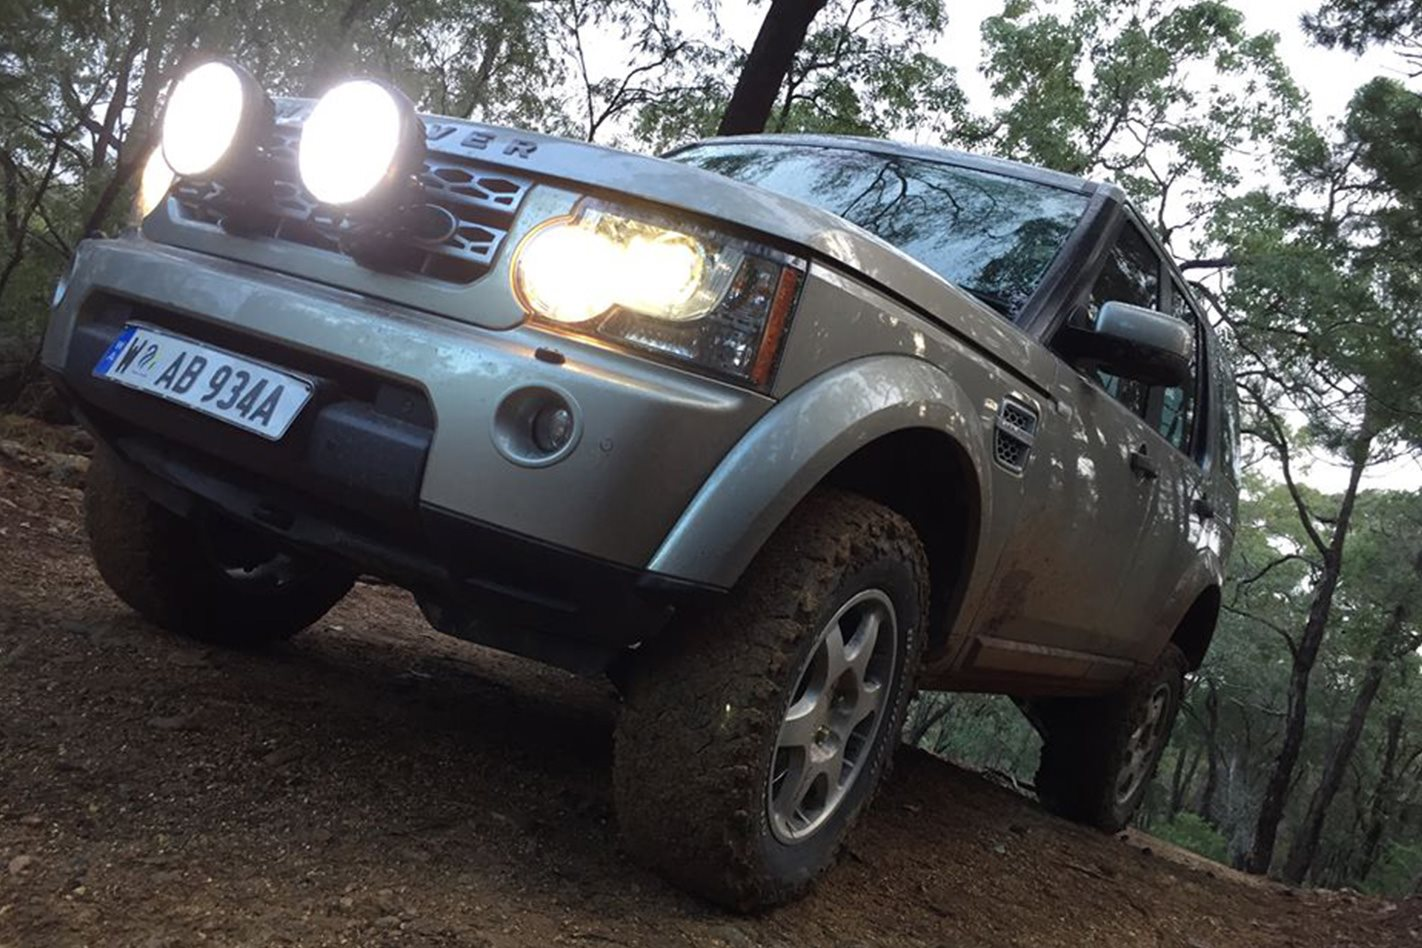 2012 5.0 V8 LAND ROVER DISCOVERY – BRIAN ELLOY